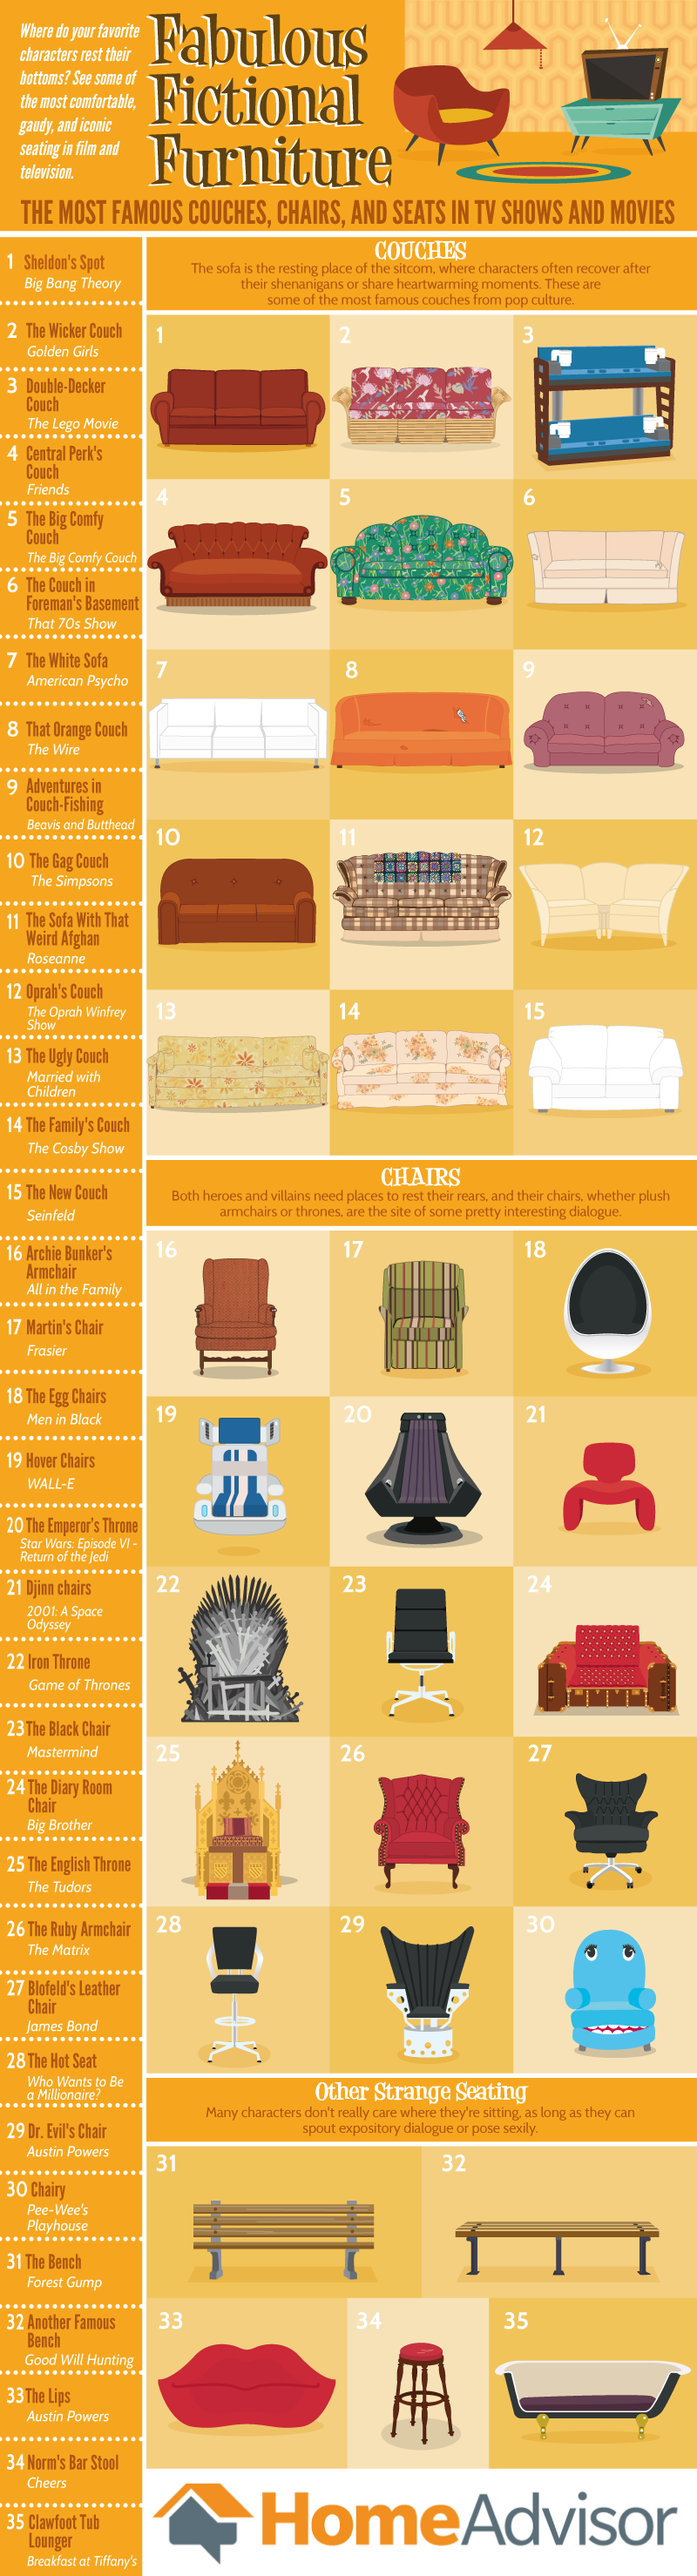 Fabulous Fictional Furniture